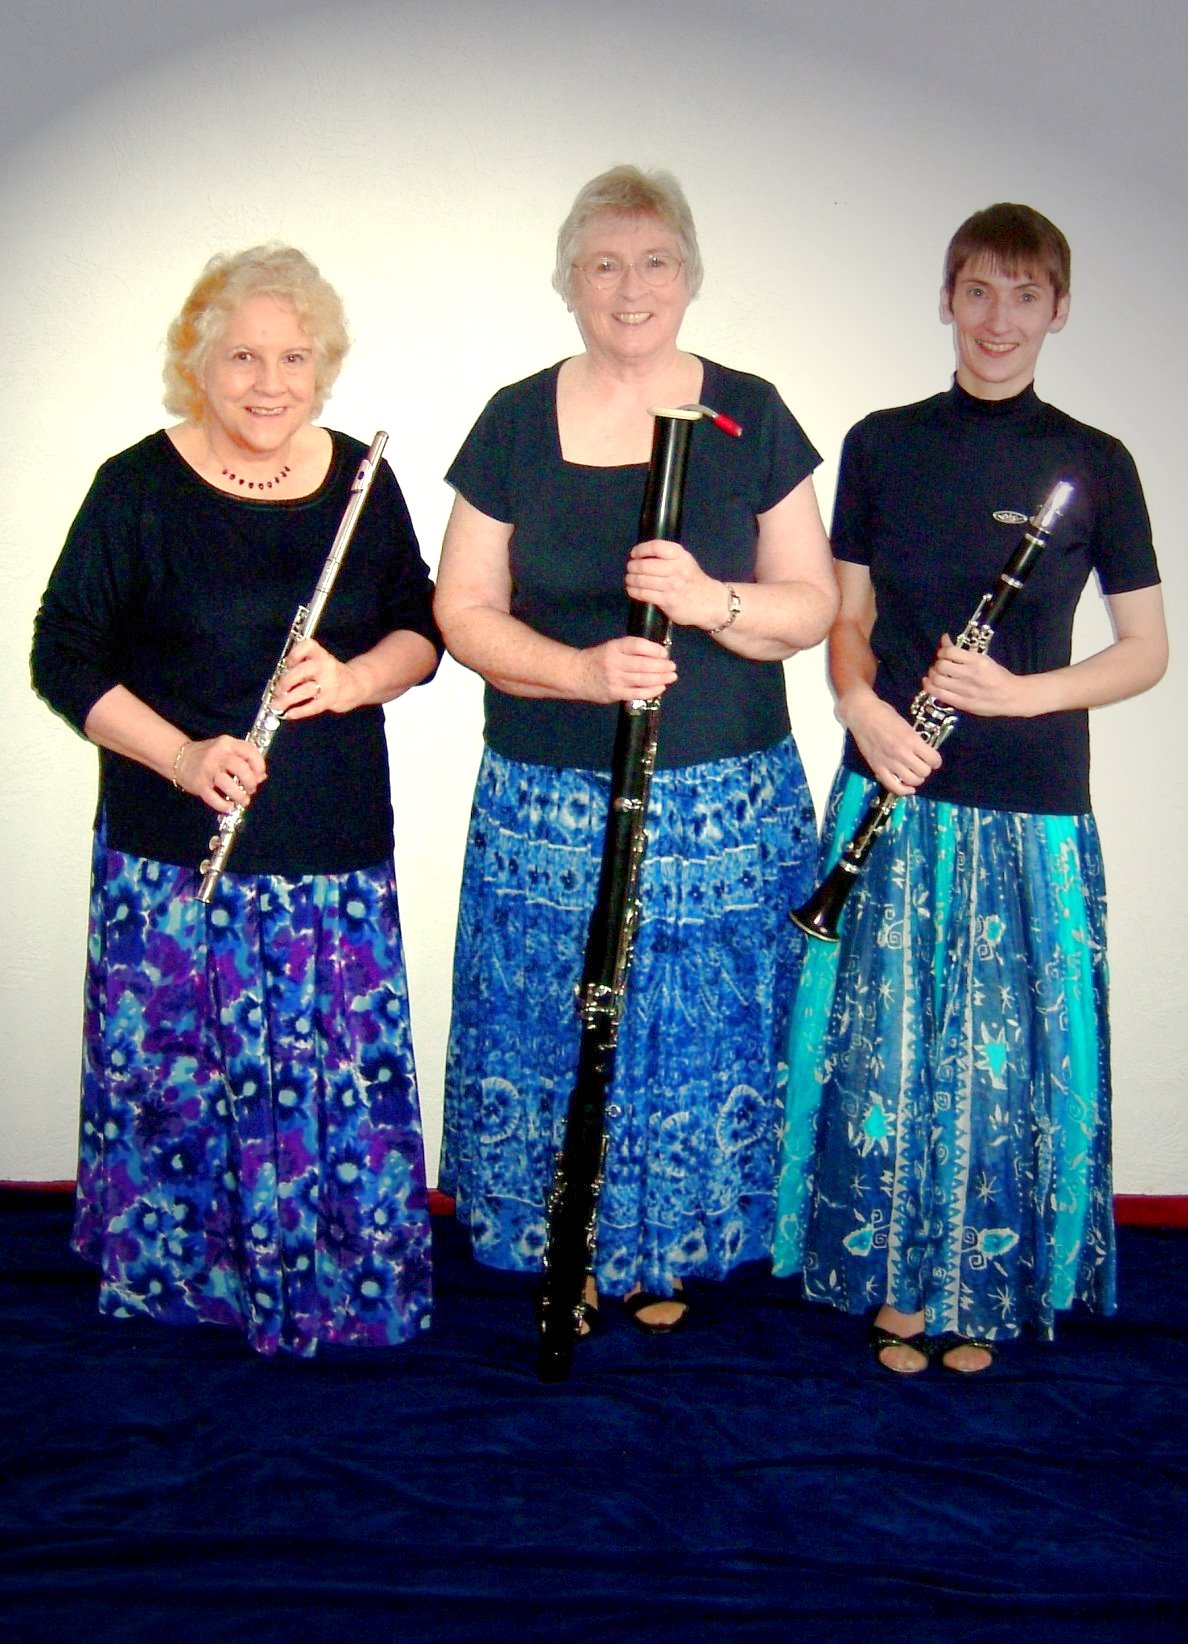 Trio in long blue skirts